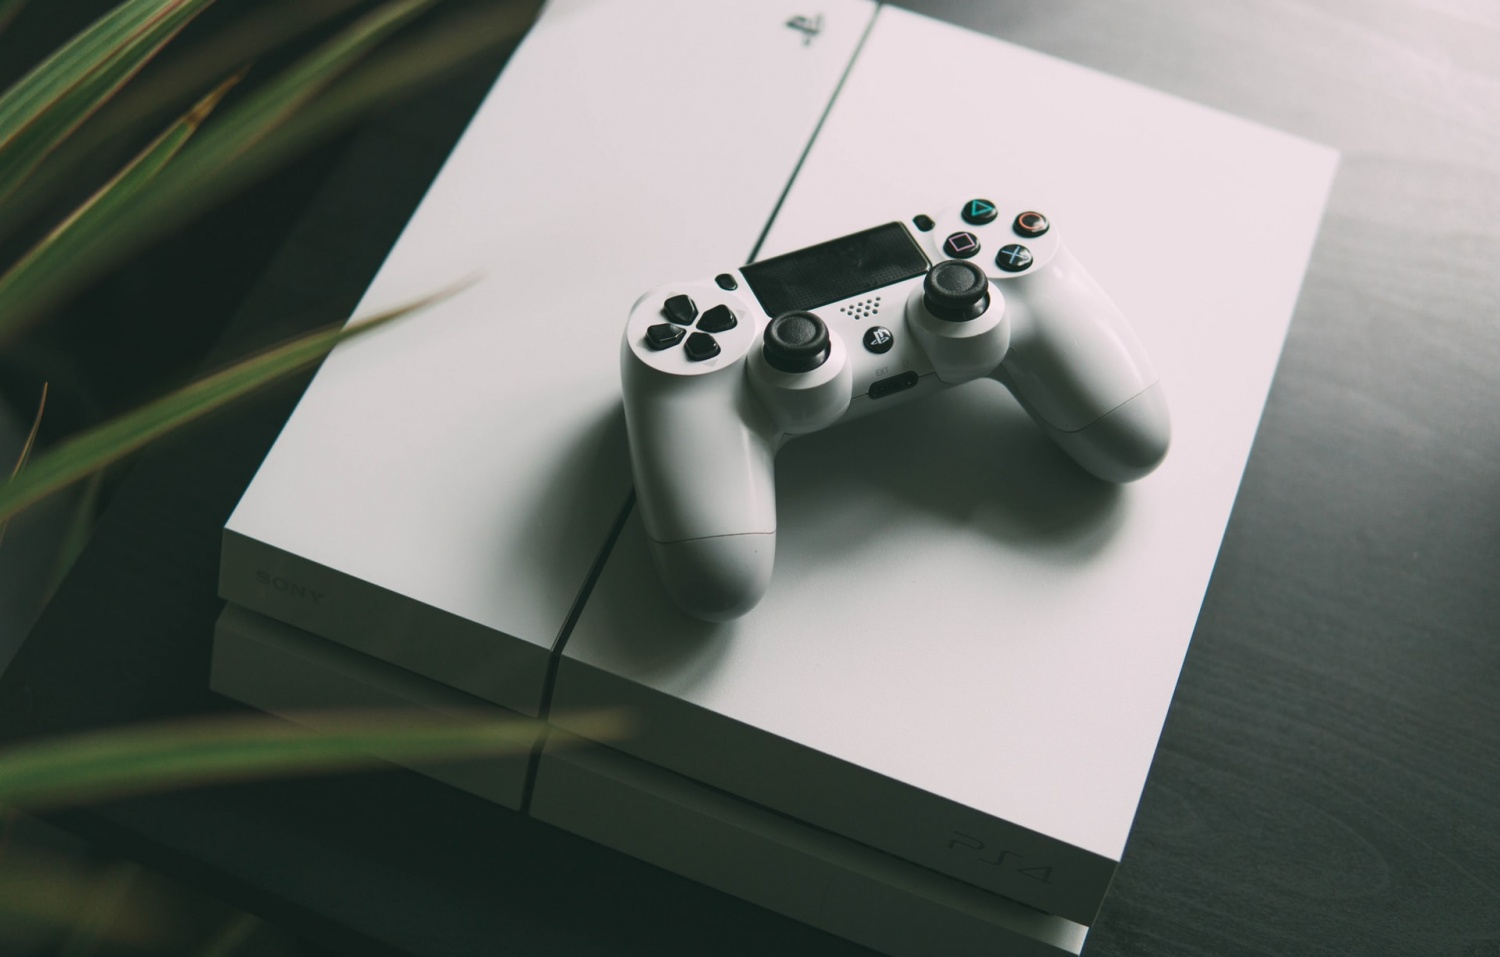 How to Increase Download Speeds on PS4: An Easy Way